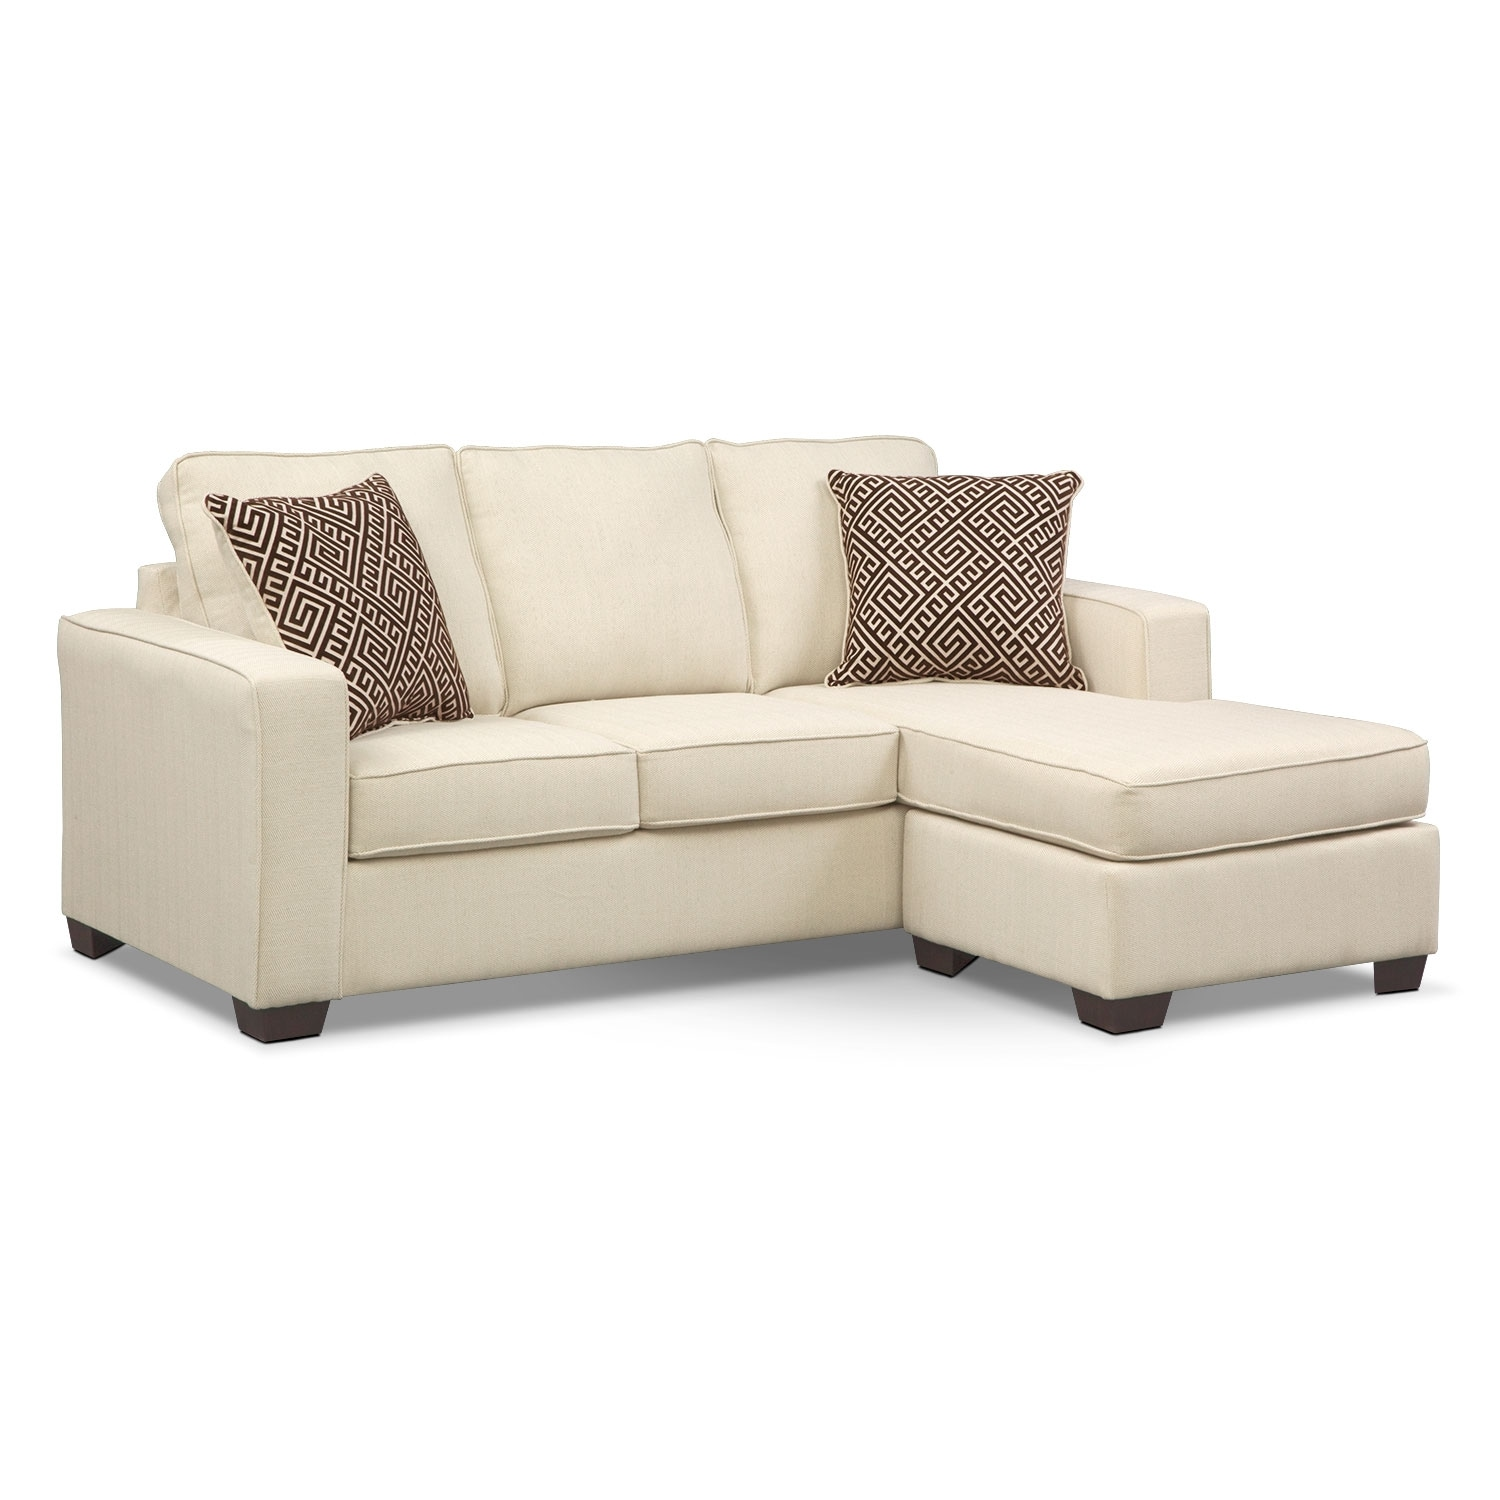 Sterling Beige Queen Memory Foam Sleeper Sofa W Chaise